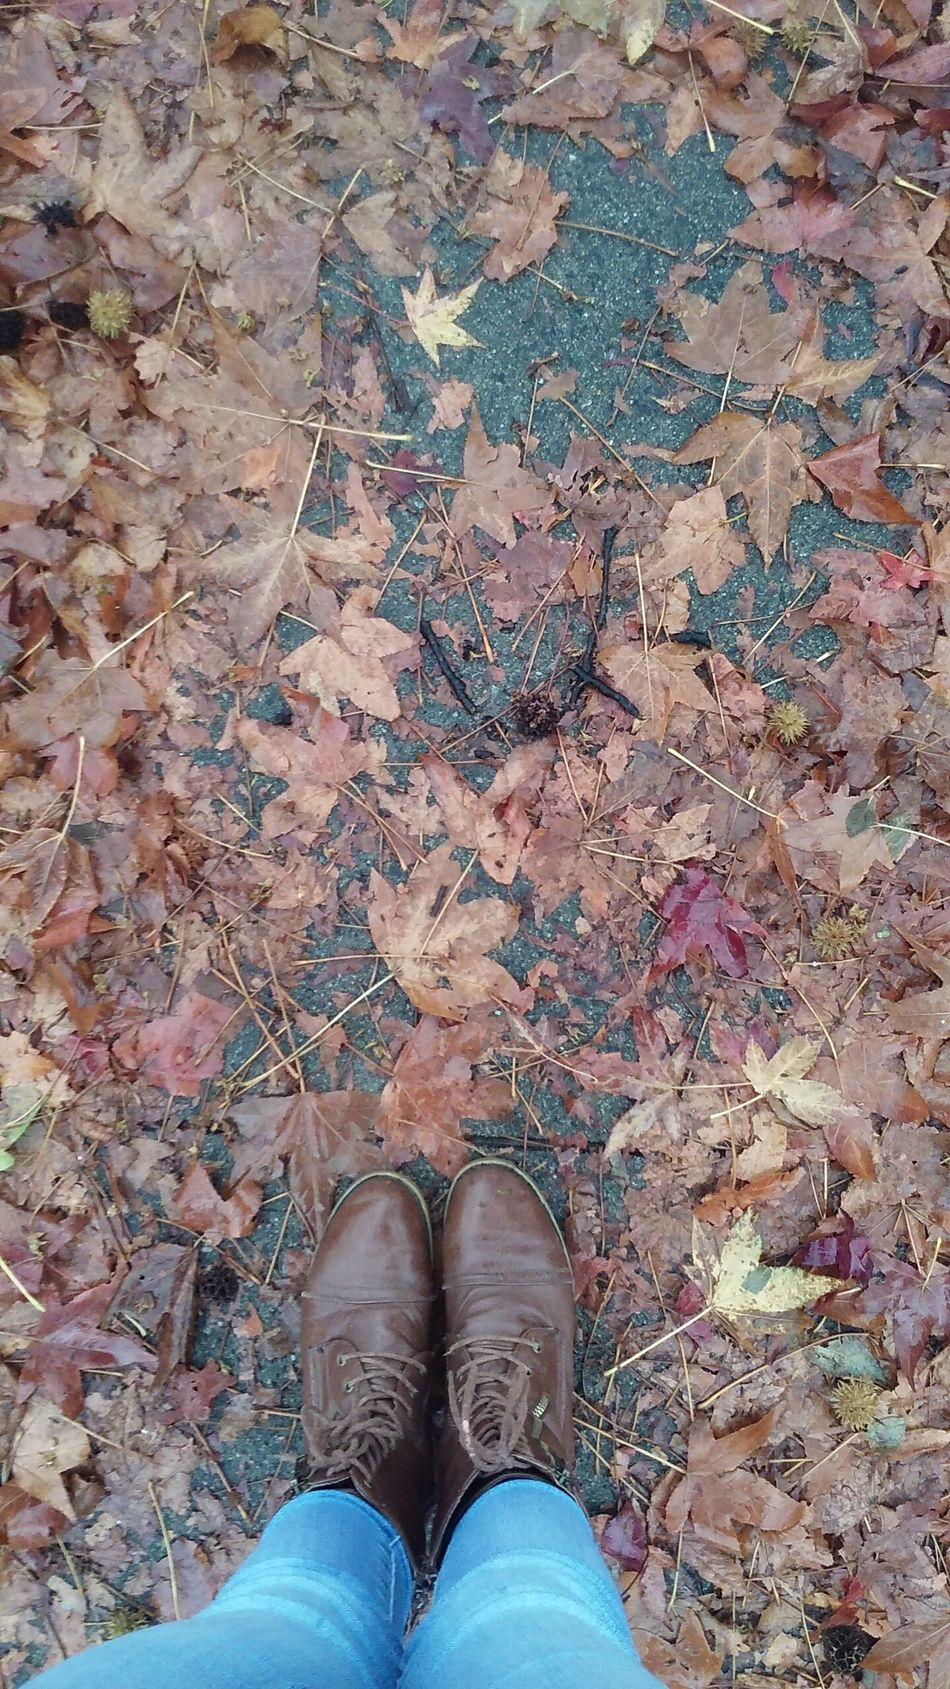 Fall Beauty In Nature Fallcolors Old Boots Sticks